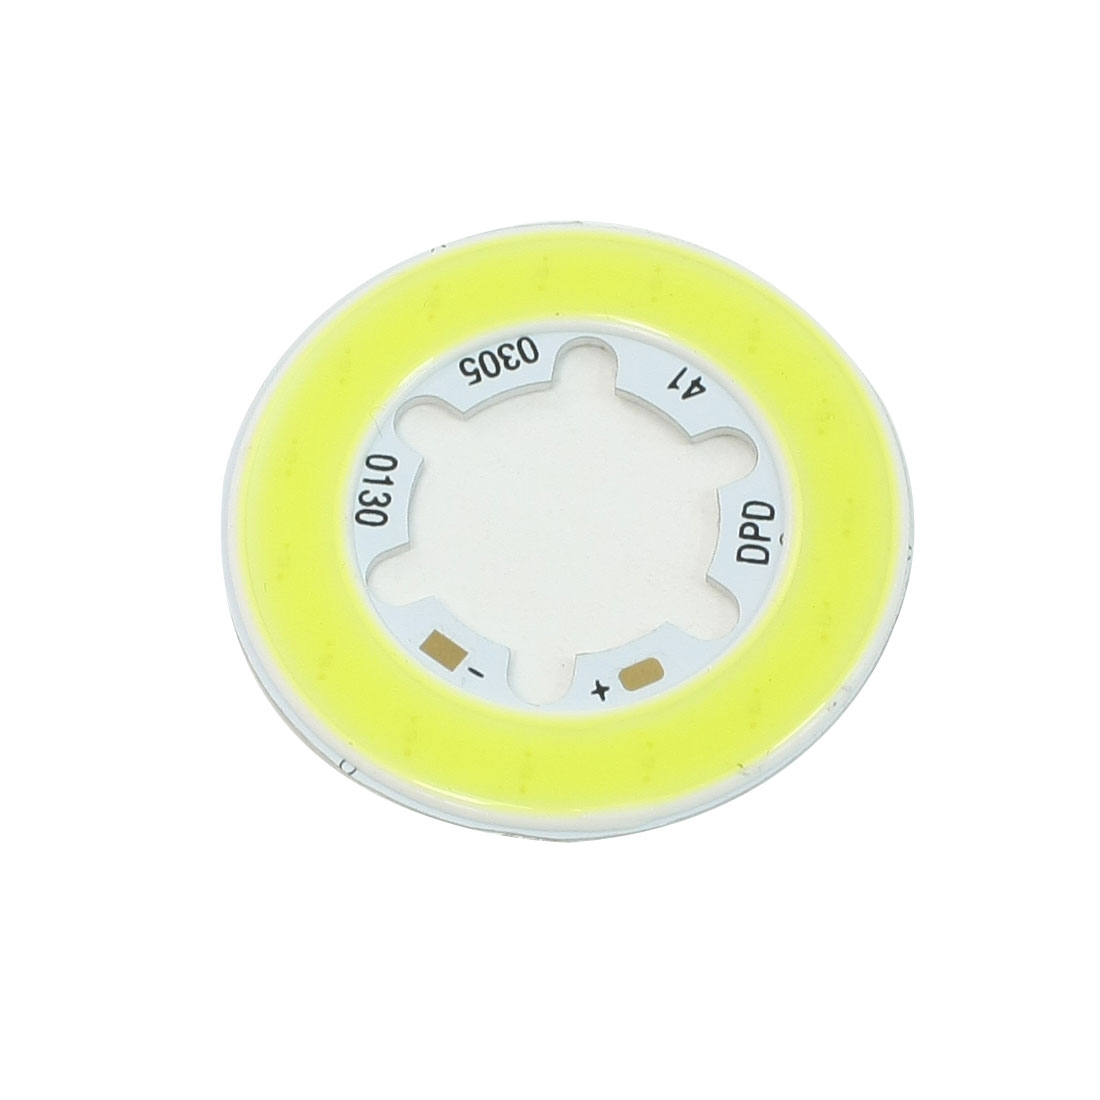 6W High Power Pure White SMD COB LED Lamp Bead 570-630LM 6000K